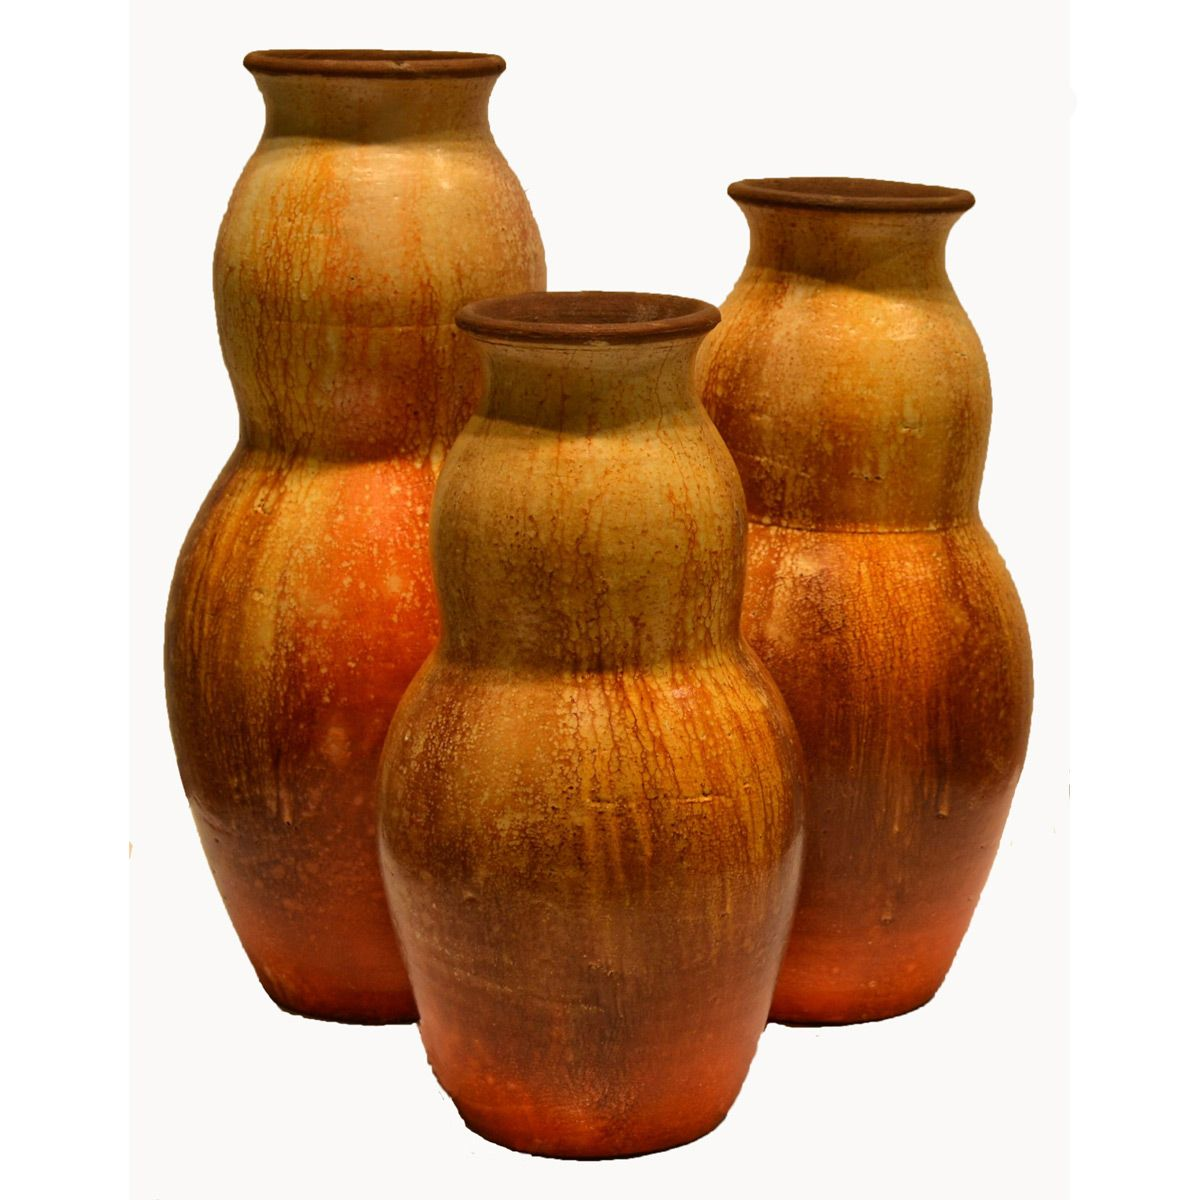 Calabaza Orange Vases - Set of 3